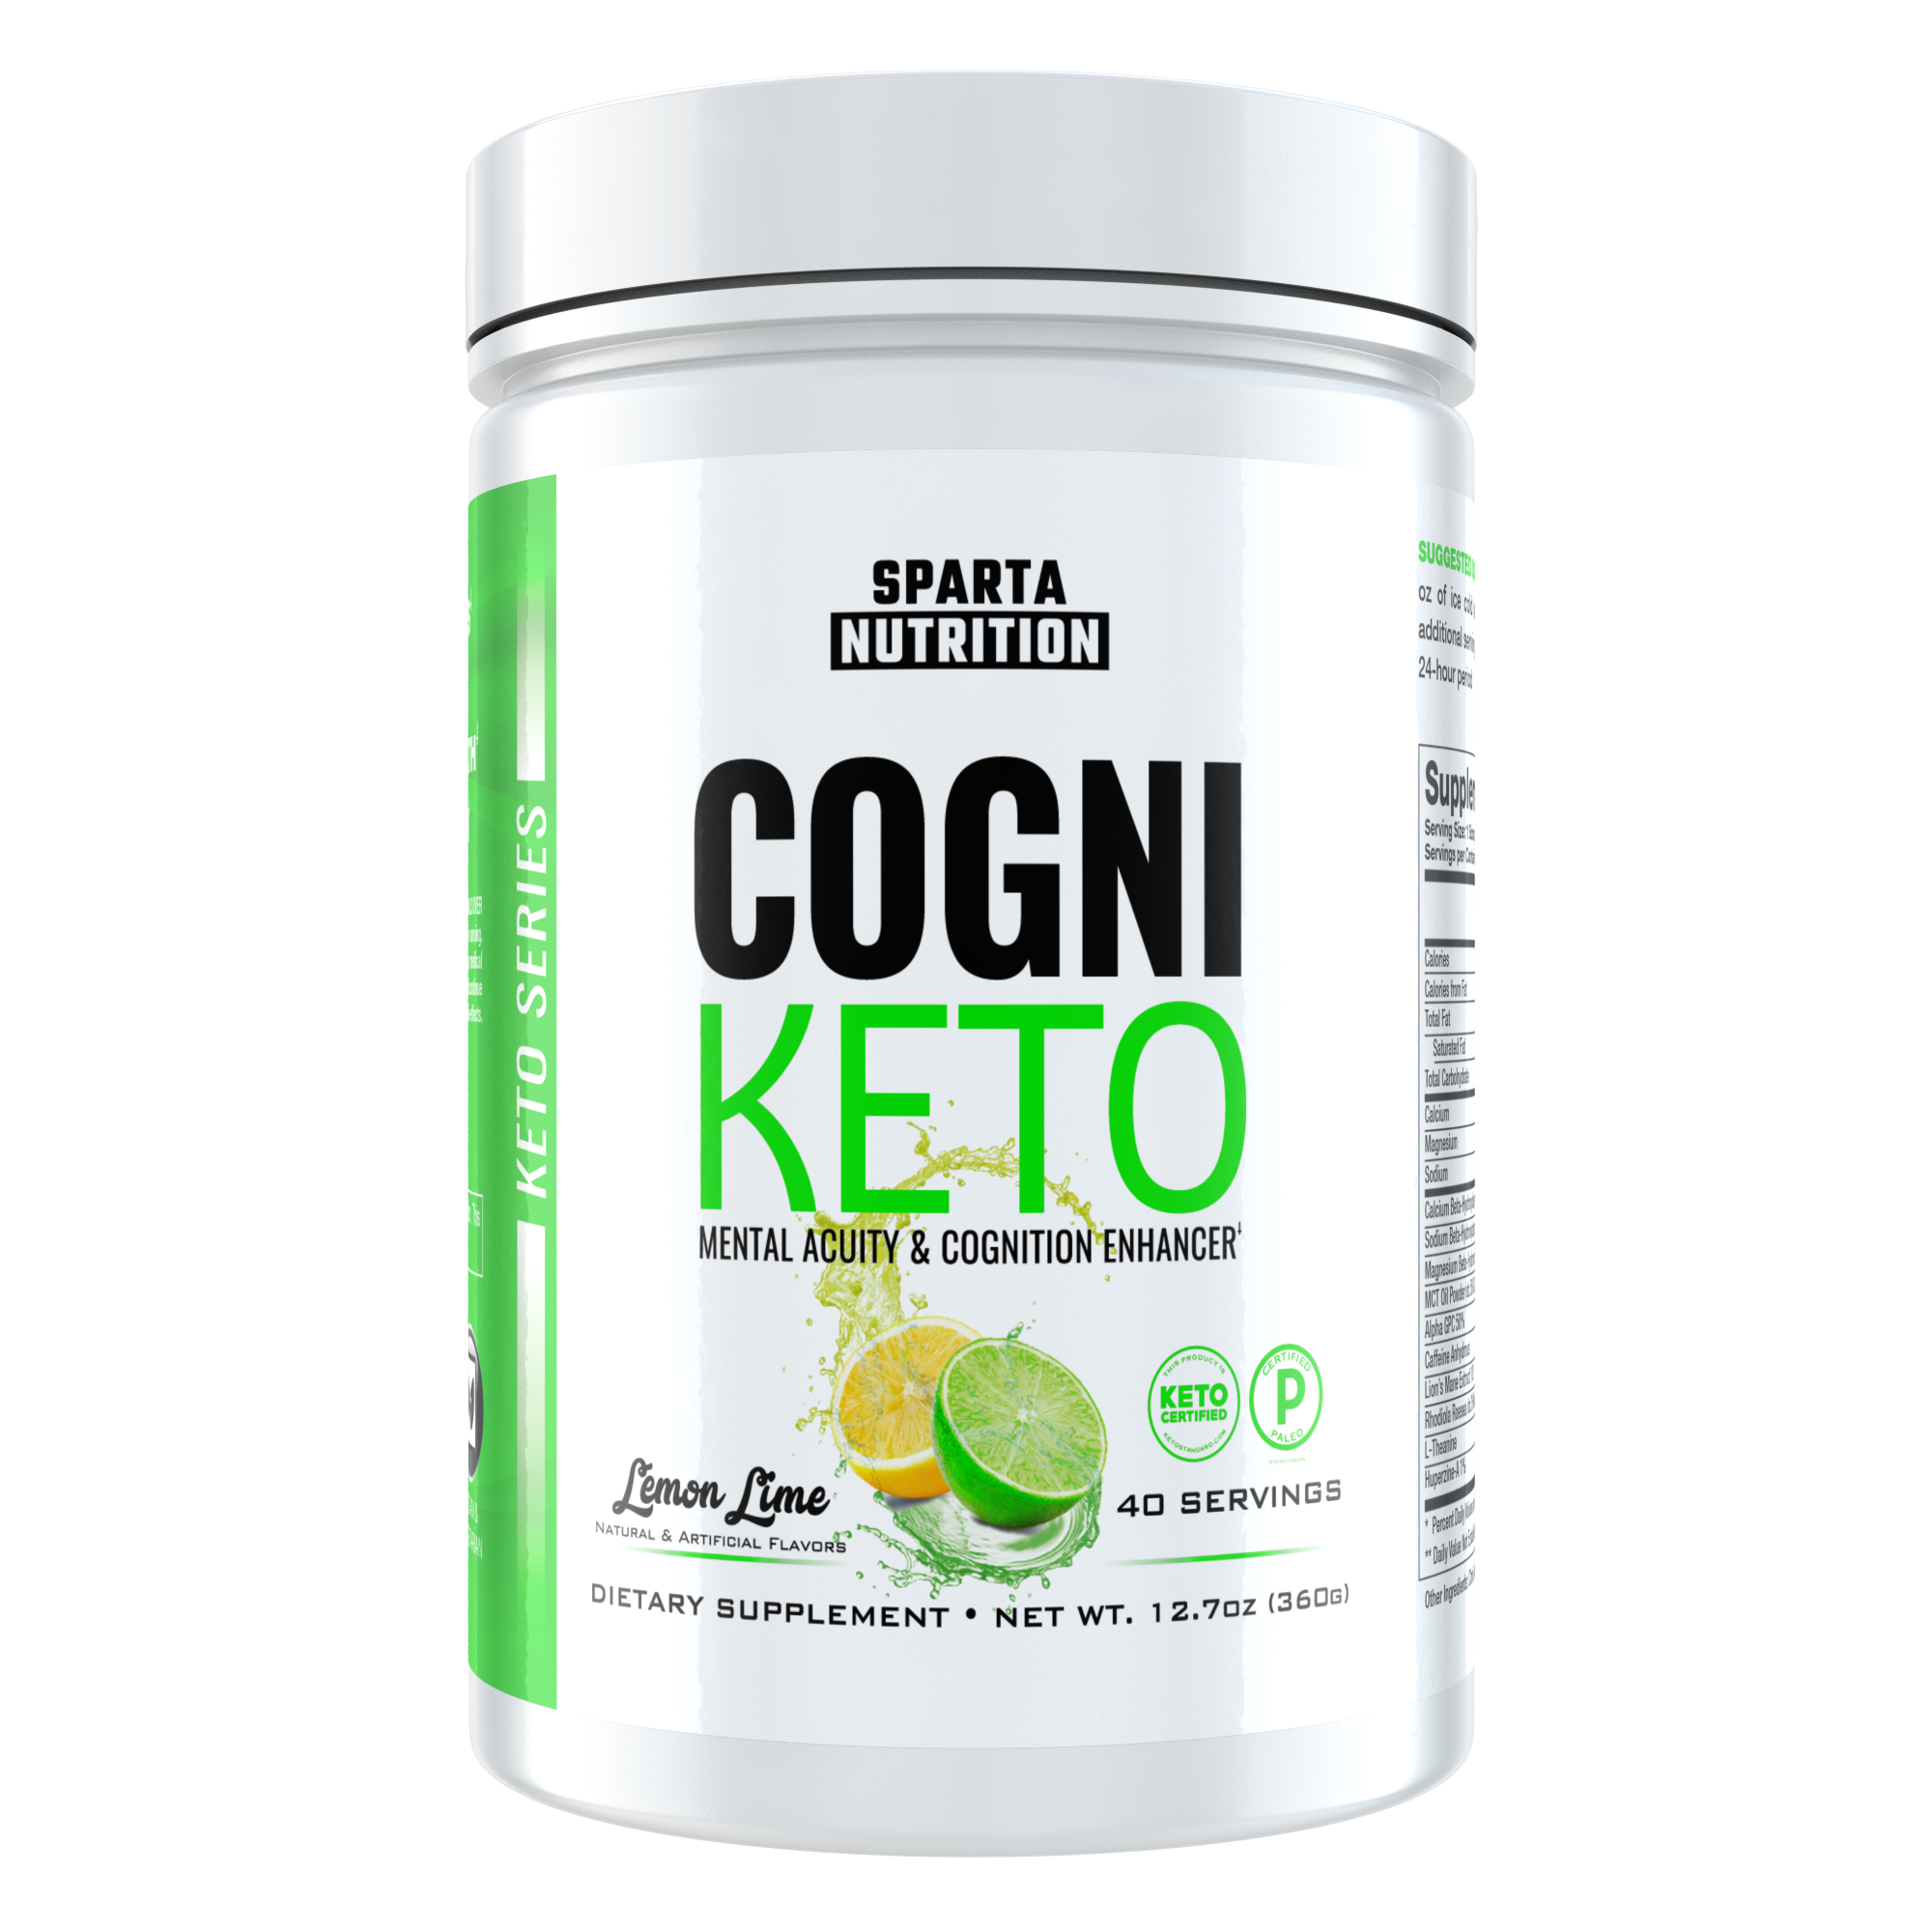 CogniKeto: The Ketogenic Nootropic by Sparta Nutrition